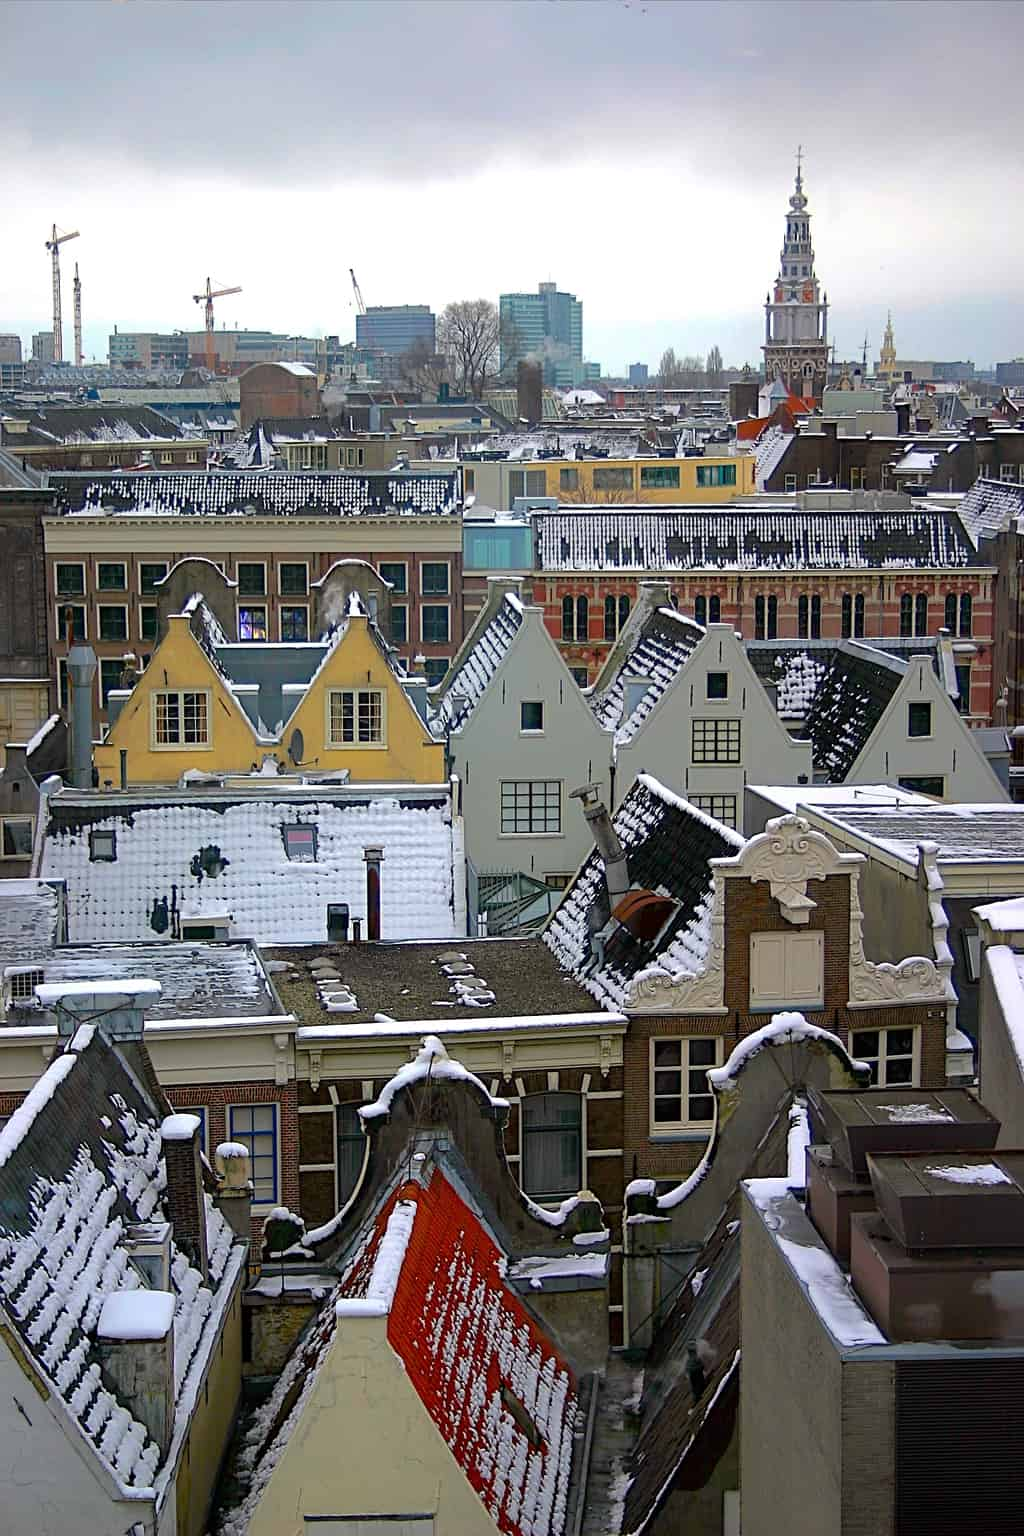 The quaint canal houses of Amsterdam covered in snow.